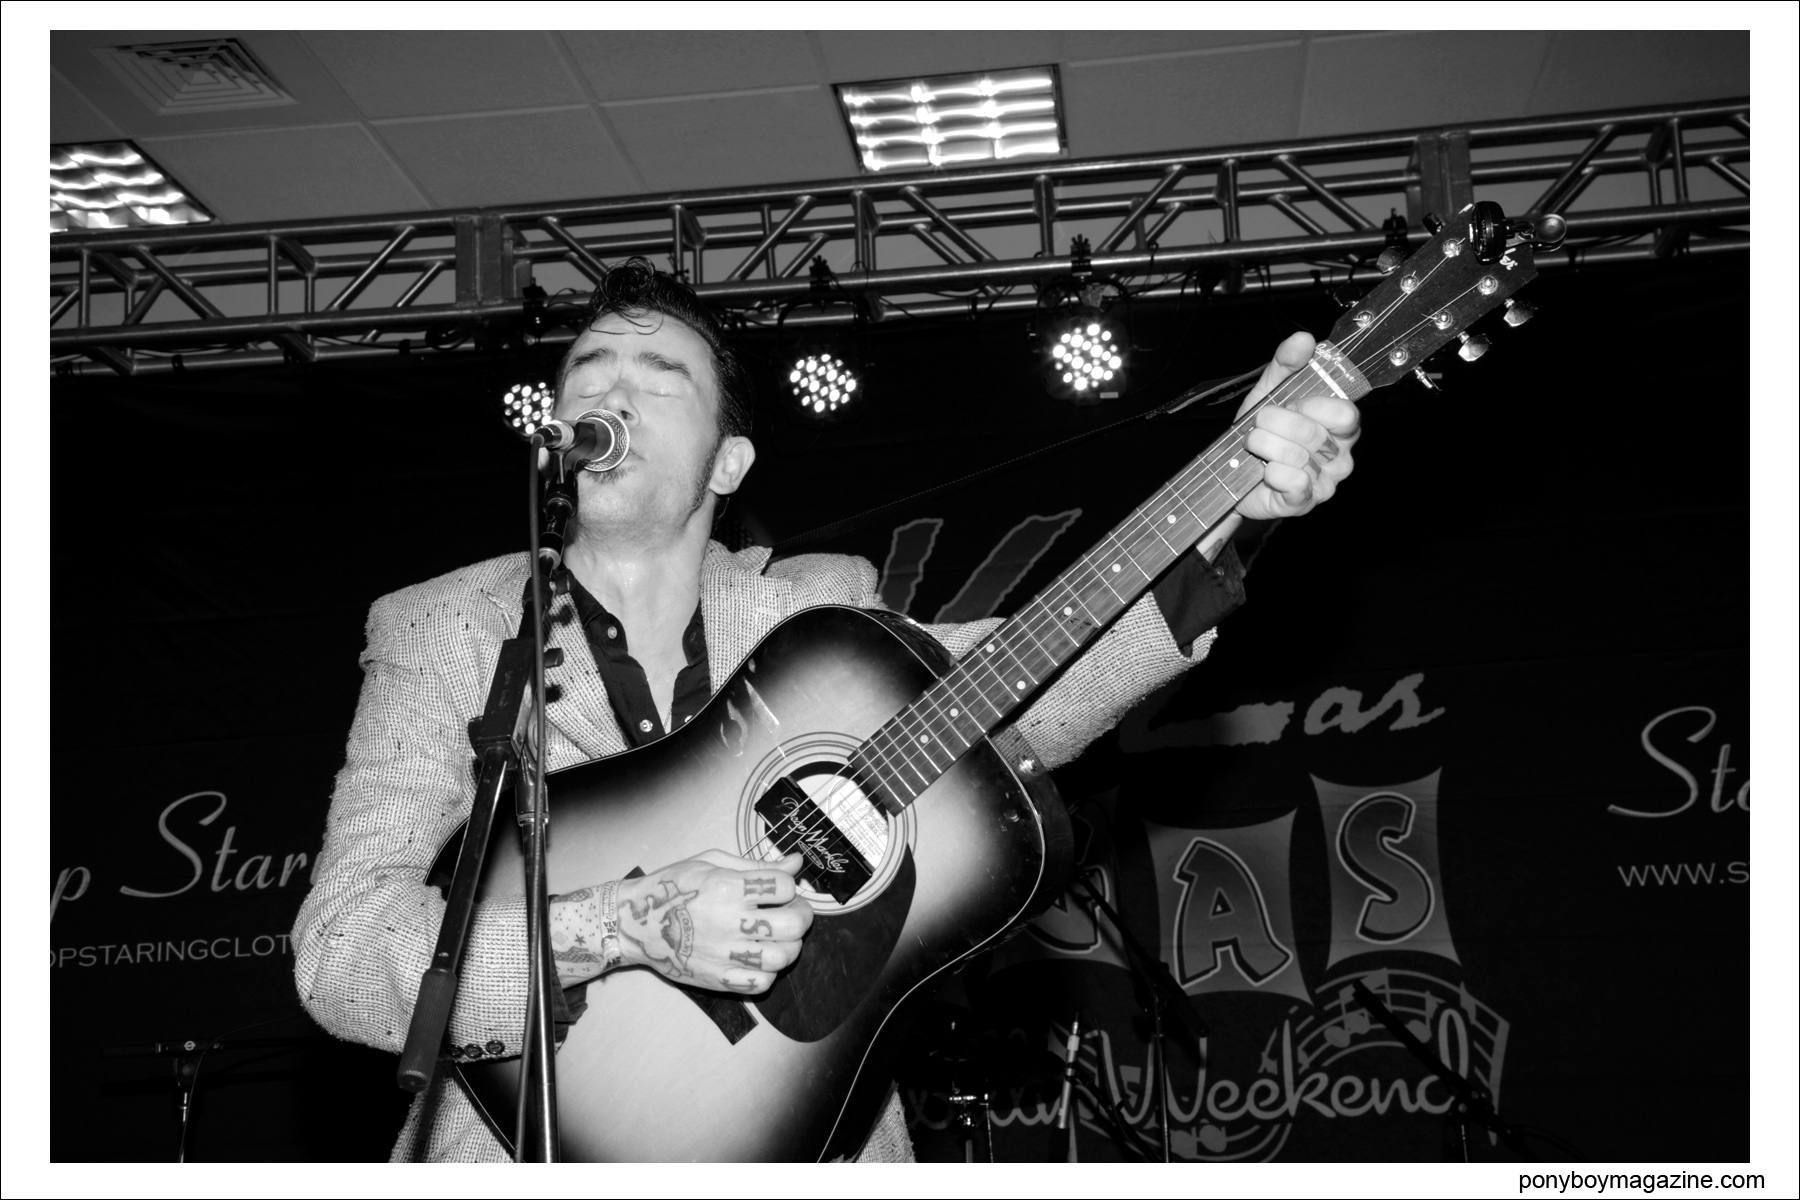 Cash O'Riley, rockabilly performer, sings on stage at Viva Las Vegas rockabilly weekender, photographed by Alexander Thompson for Ponyboy Magazine.